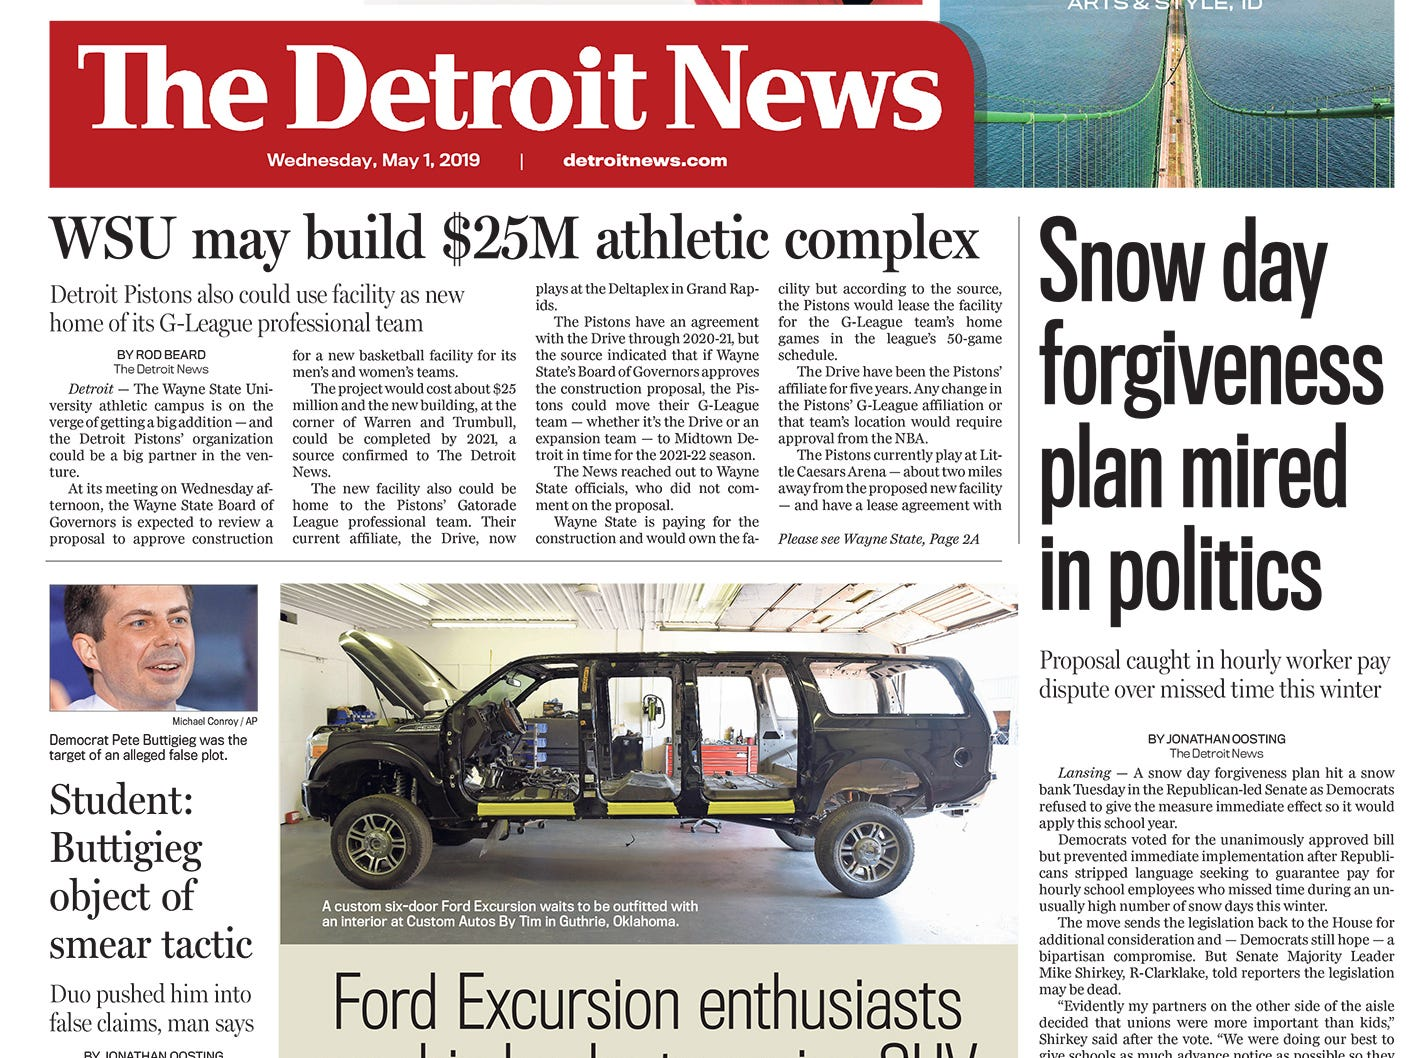 The front page of the Detroit News on Wednesday, May 1, 2019.